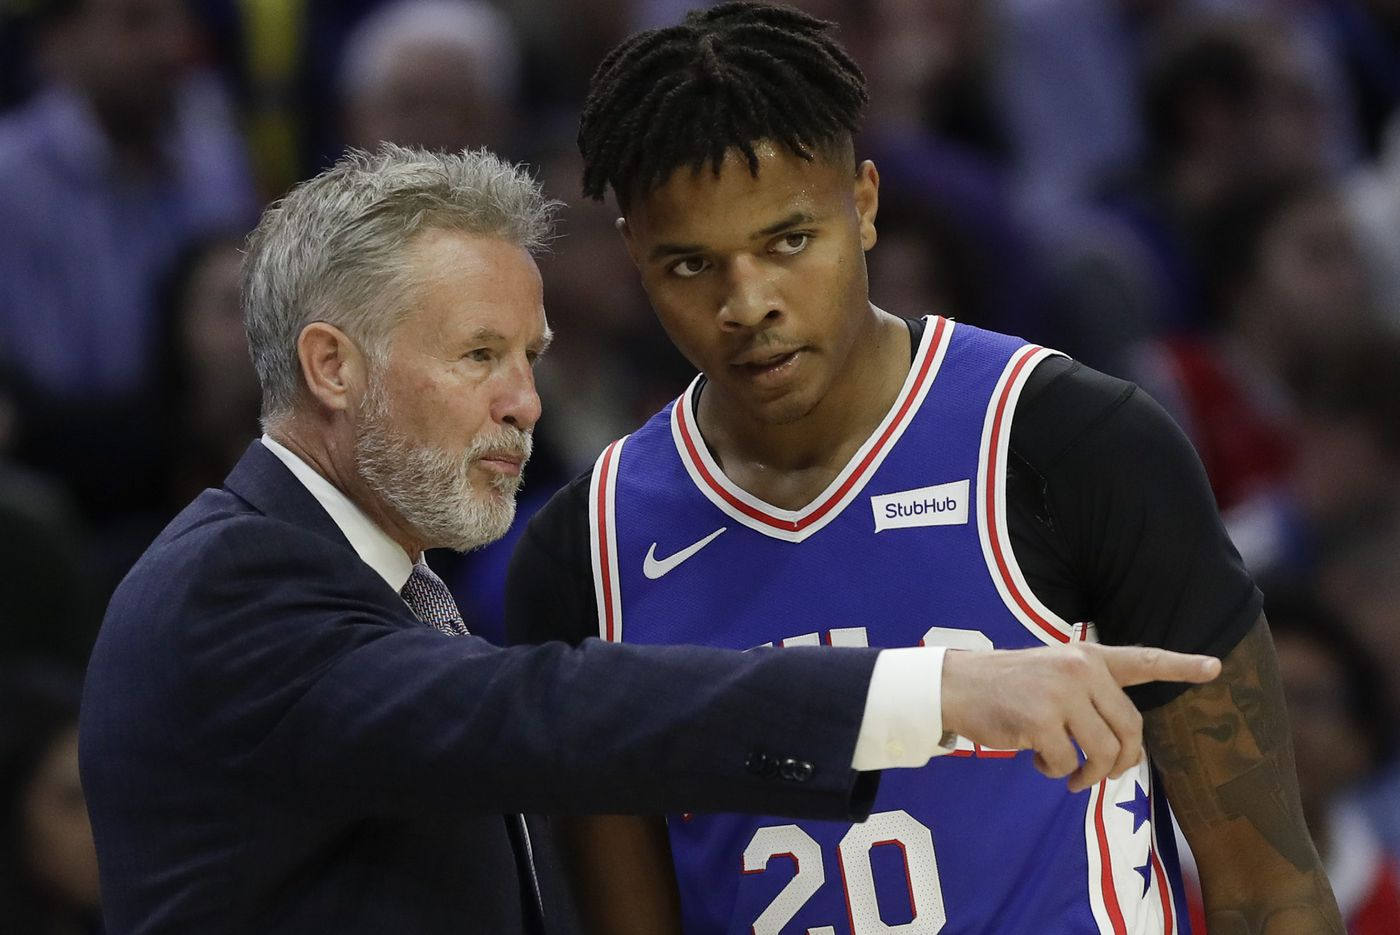 Home crowd helps Markelle Fultz go from timidity to triumph in Sixers win | David Murphy